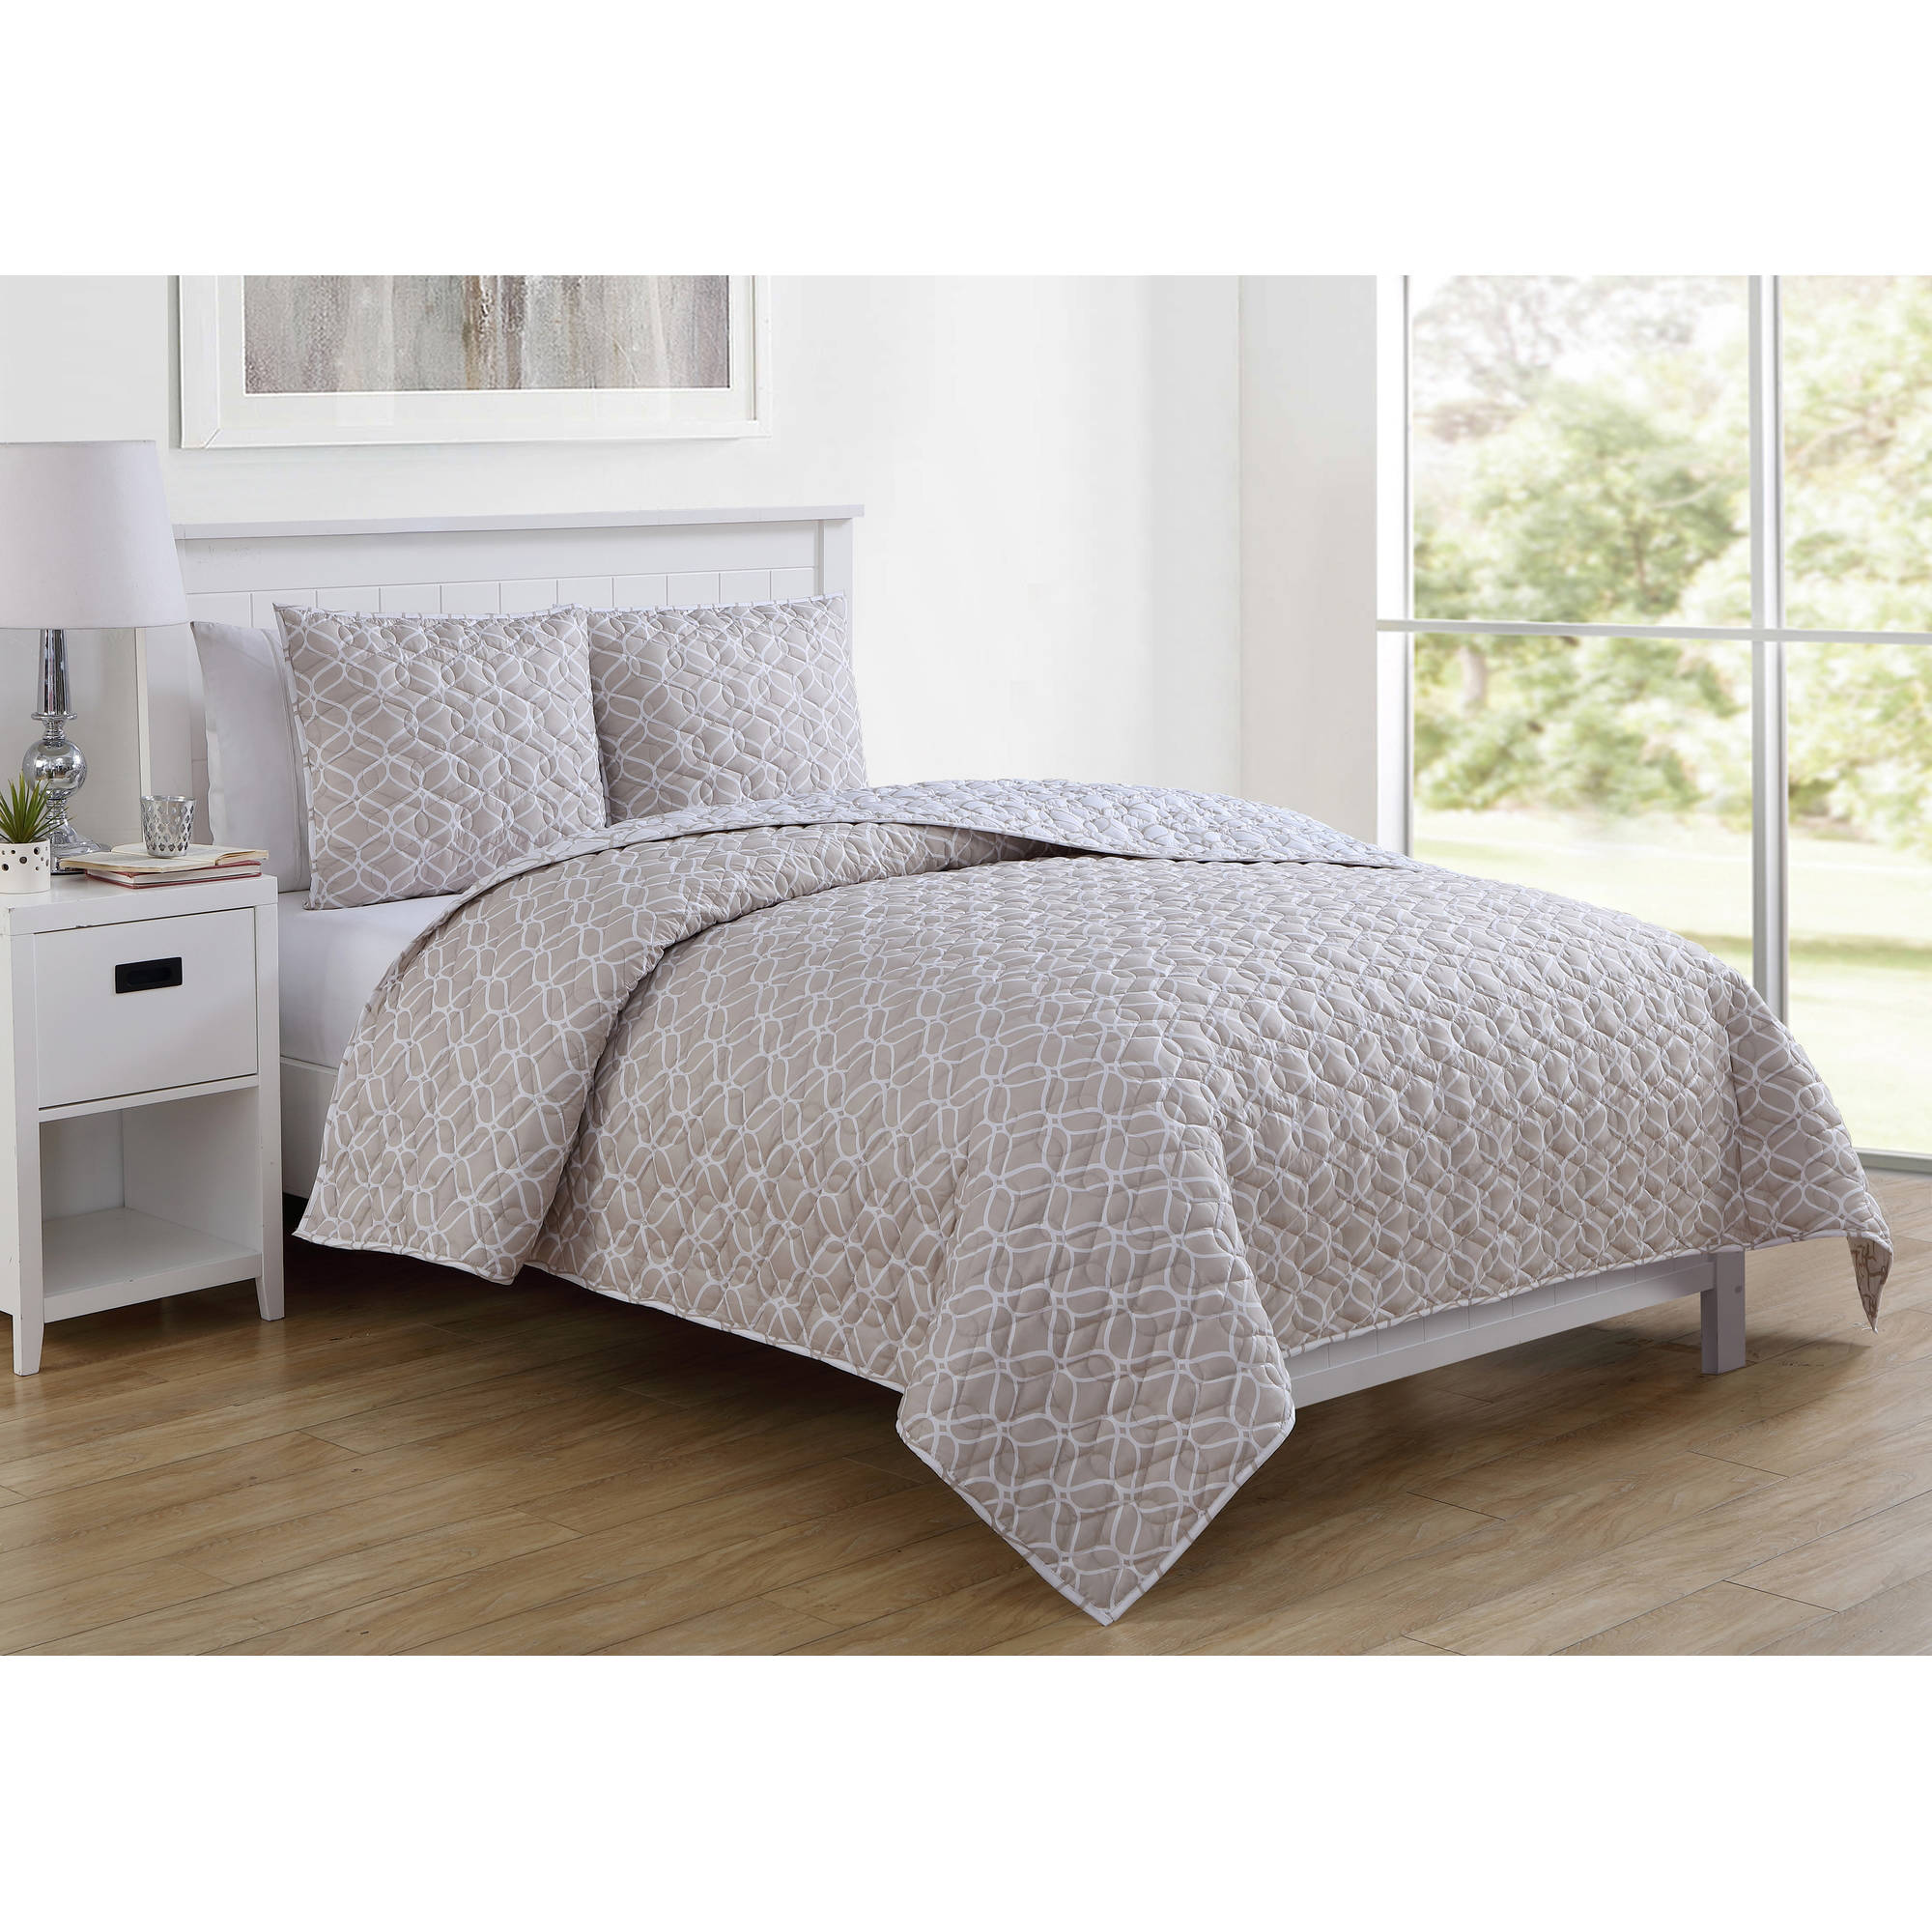 VCNY Home Taupe Gwen Geometric Printed 2/3 Piece Bedding Quilt Set, Shams Included